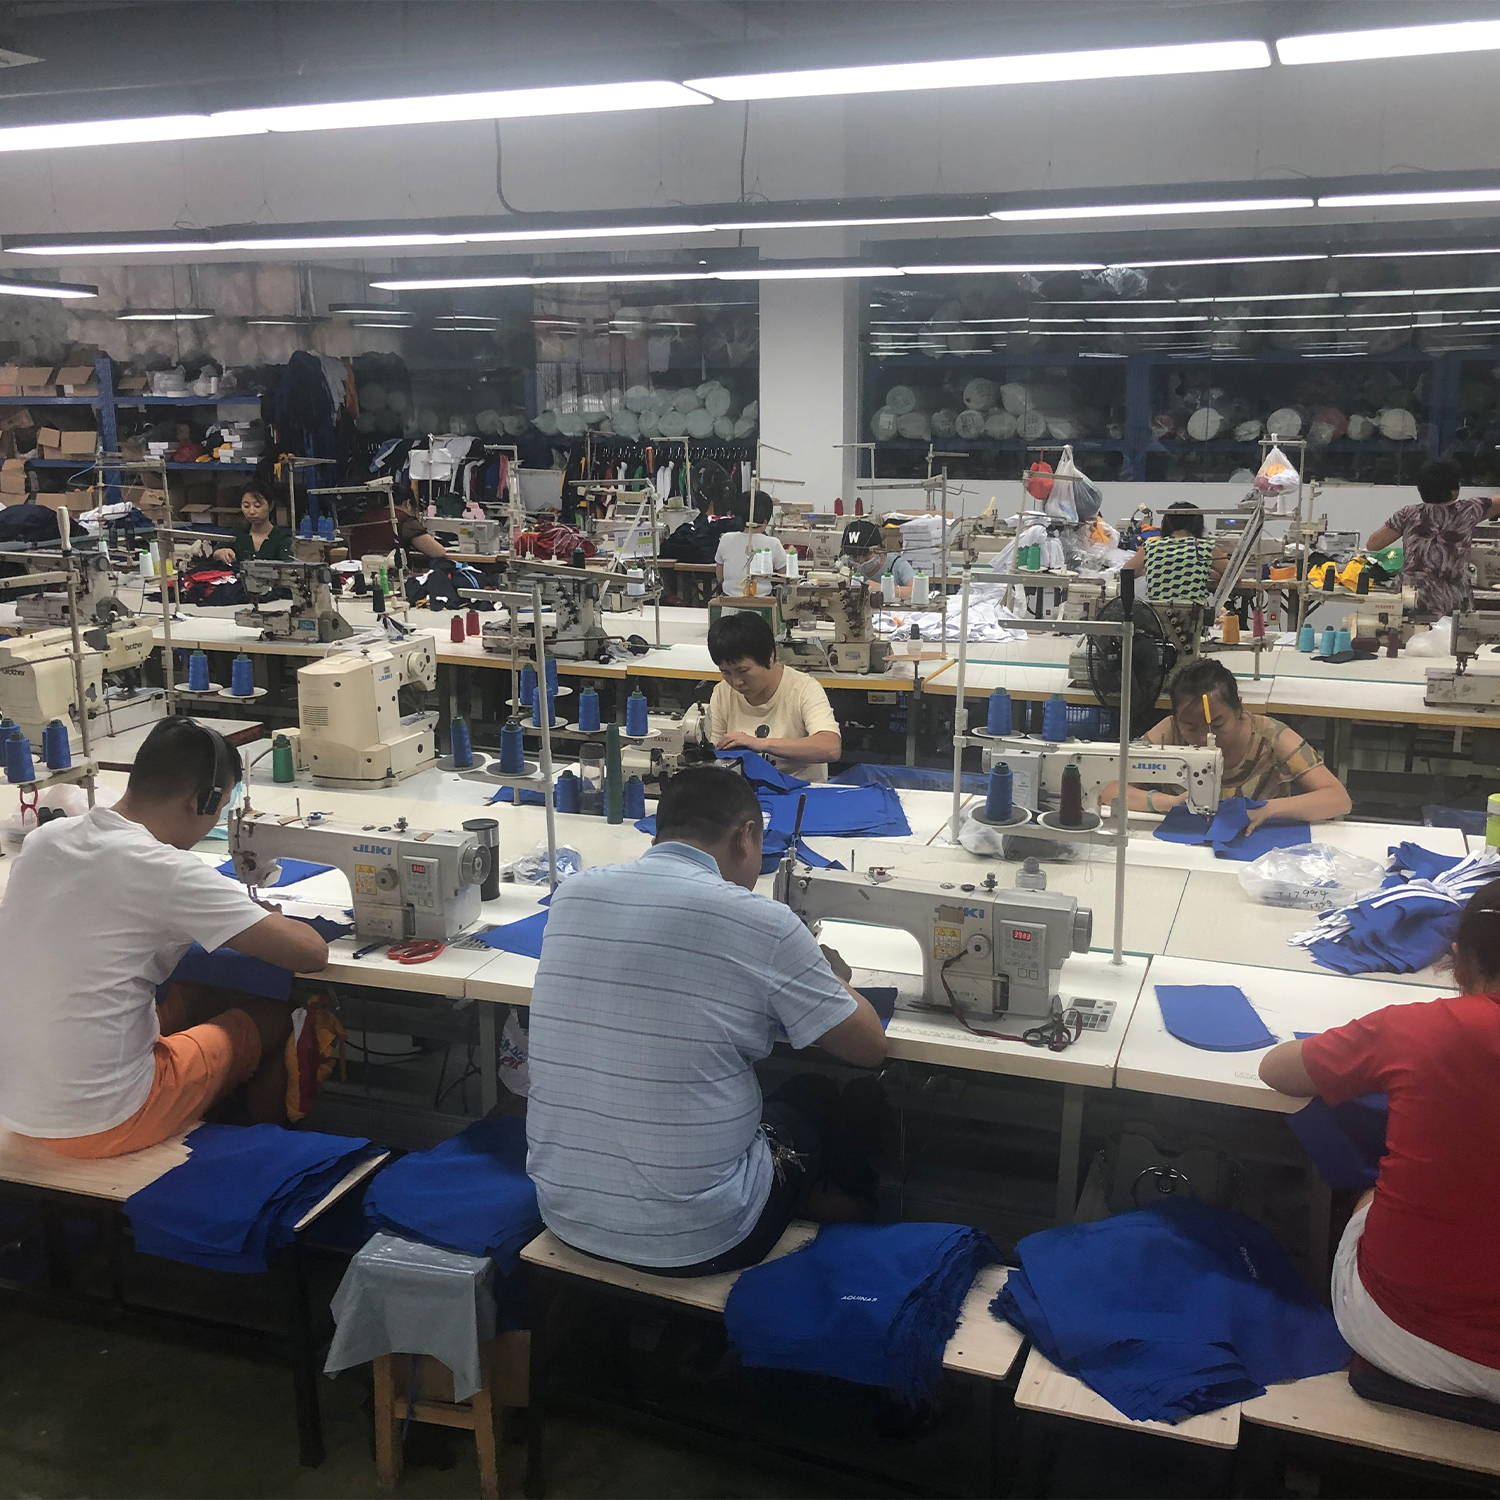 The sewing room at Talon Global